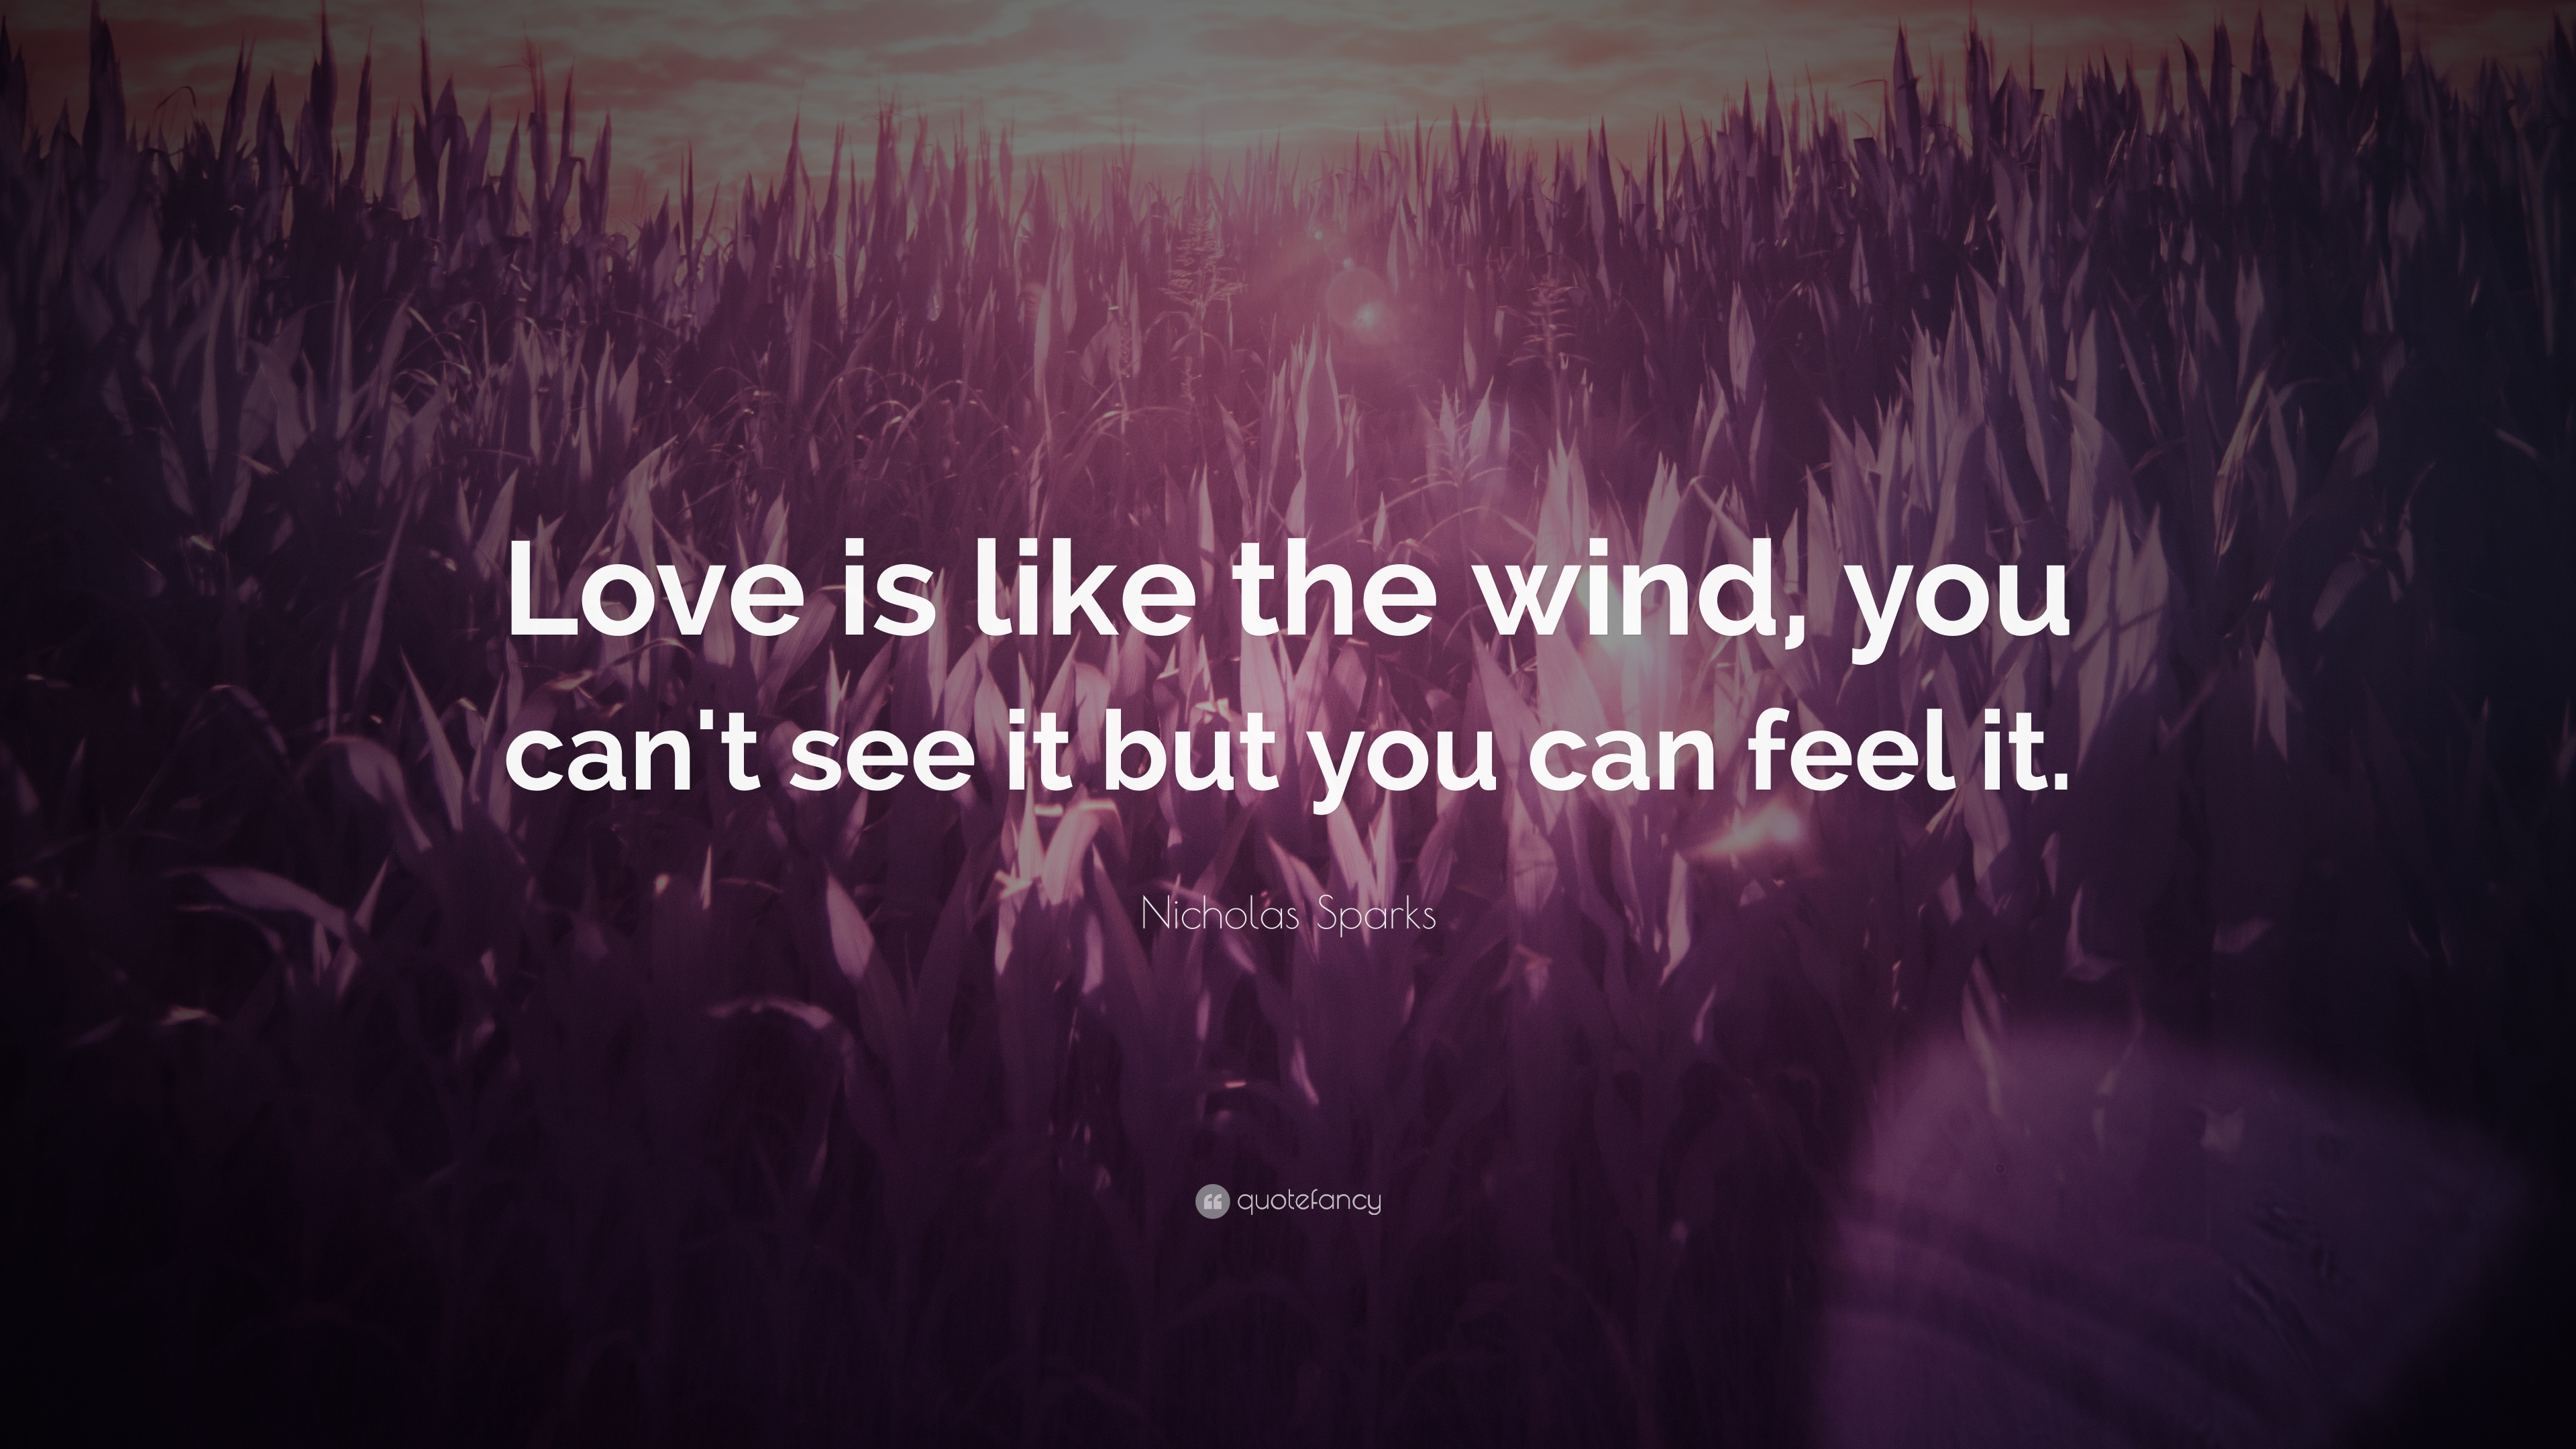 Love Lost Quotes For Her Love Quotes 26 Wallpapers  Quotefancy